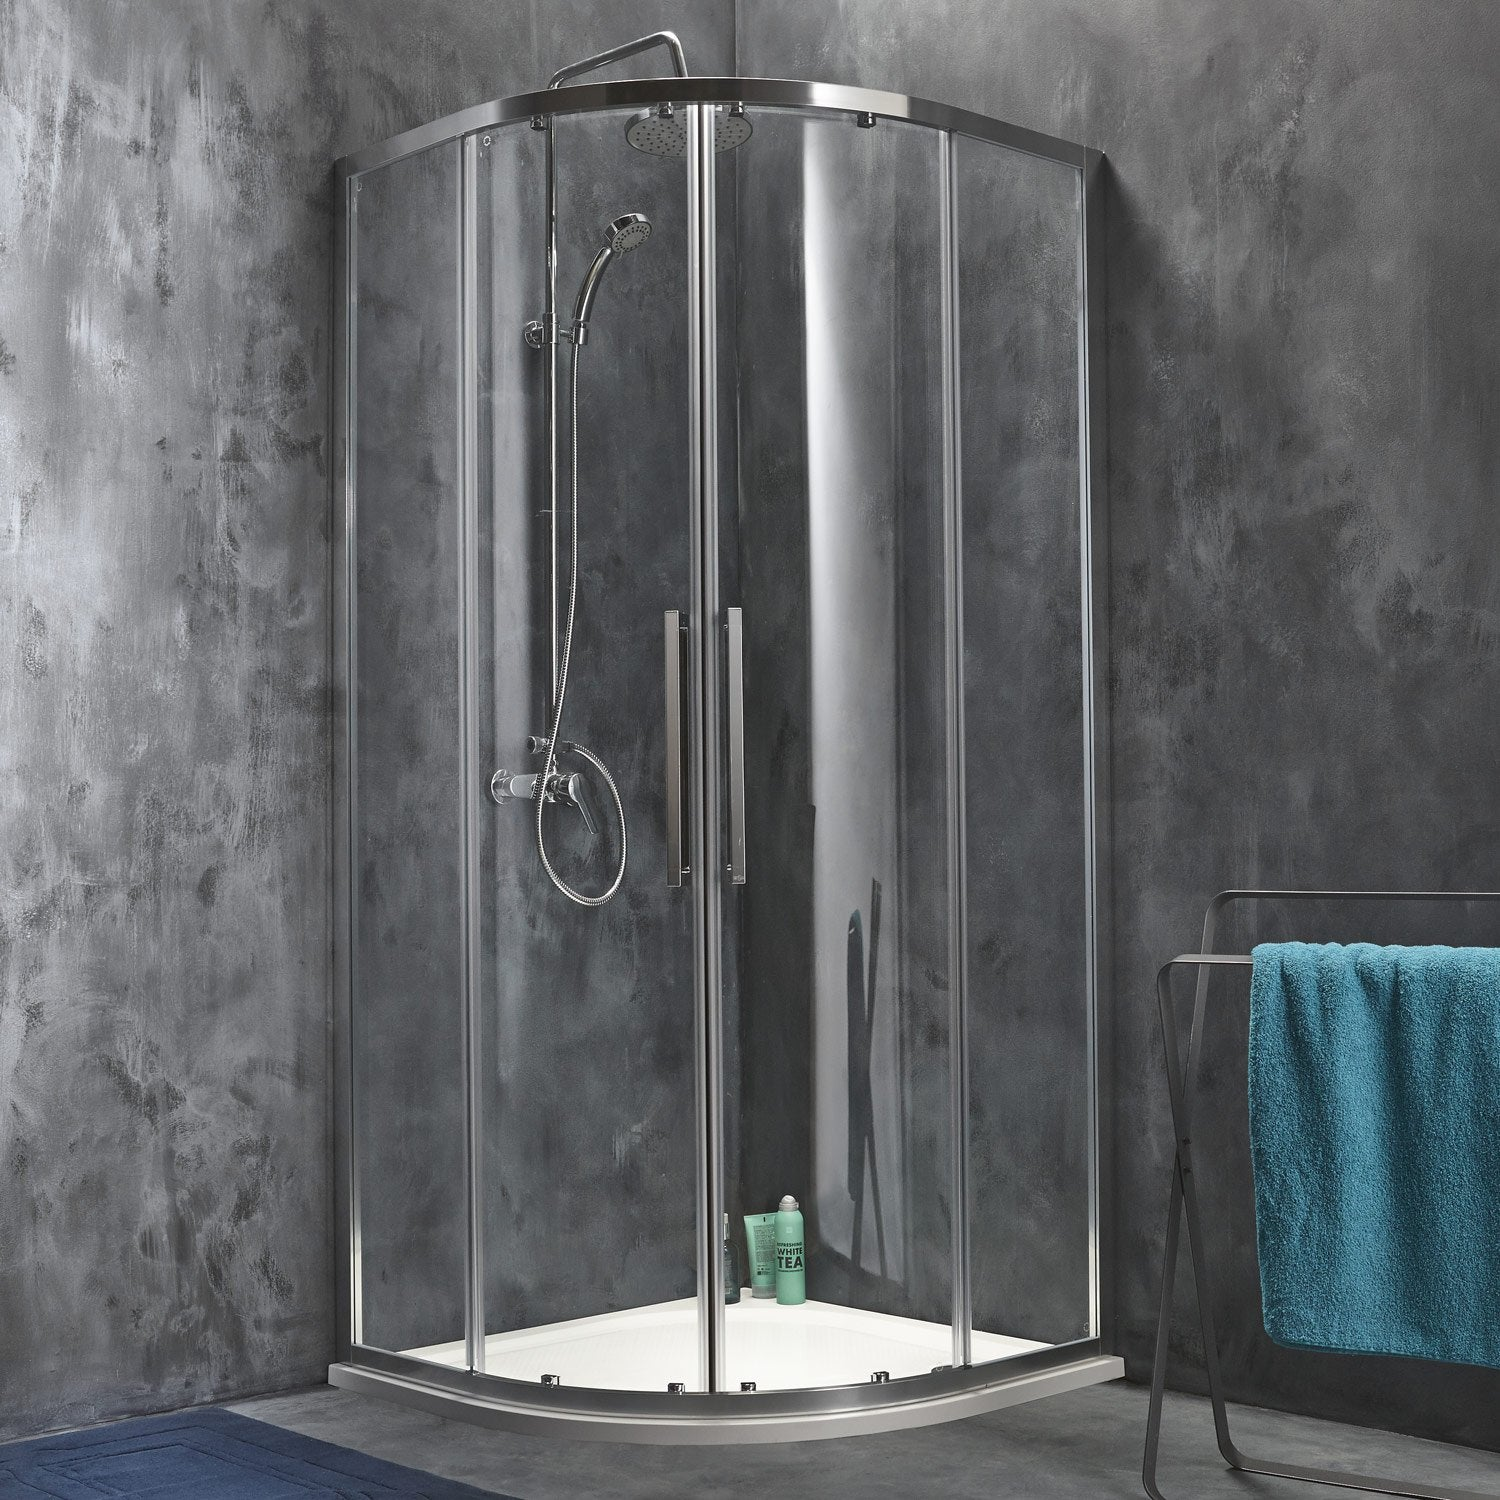 porte de douche coulissante sensea purity 3 verre transparent chrom leroy merlin. Black Bedroom Furniture Sets. Home Design Ideas